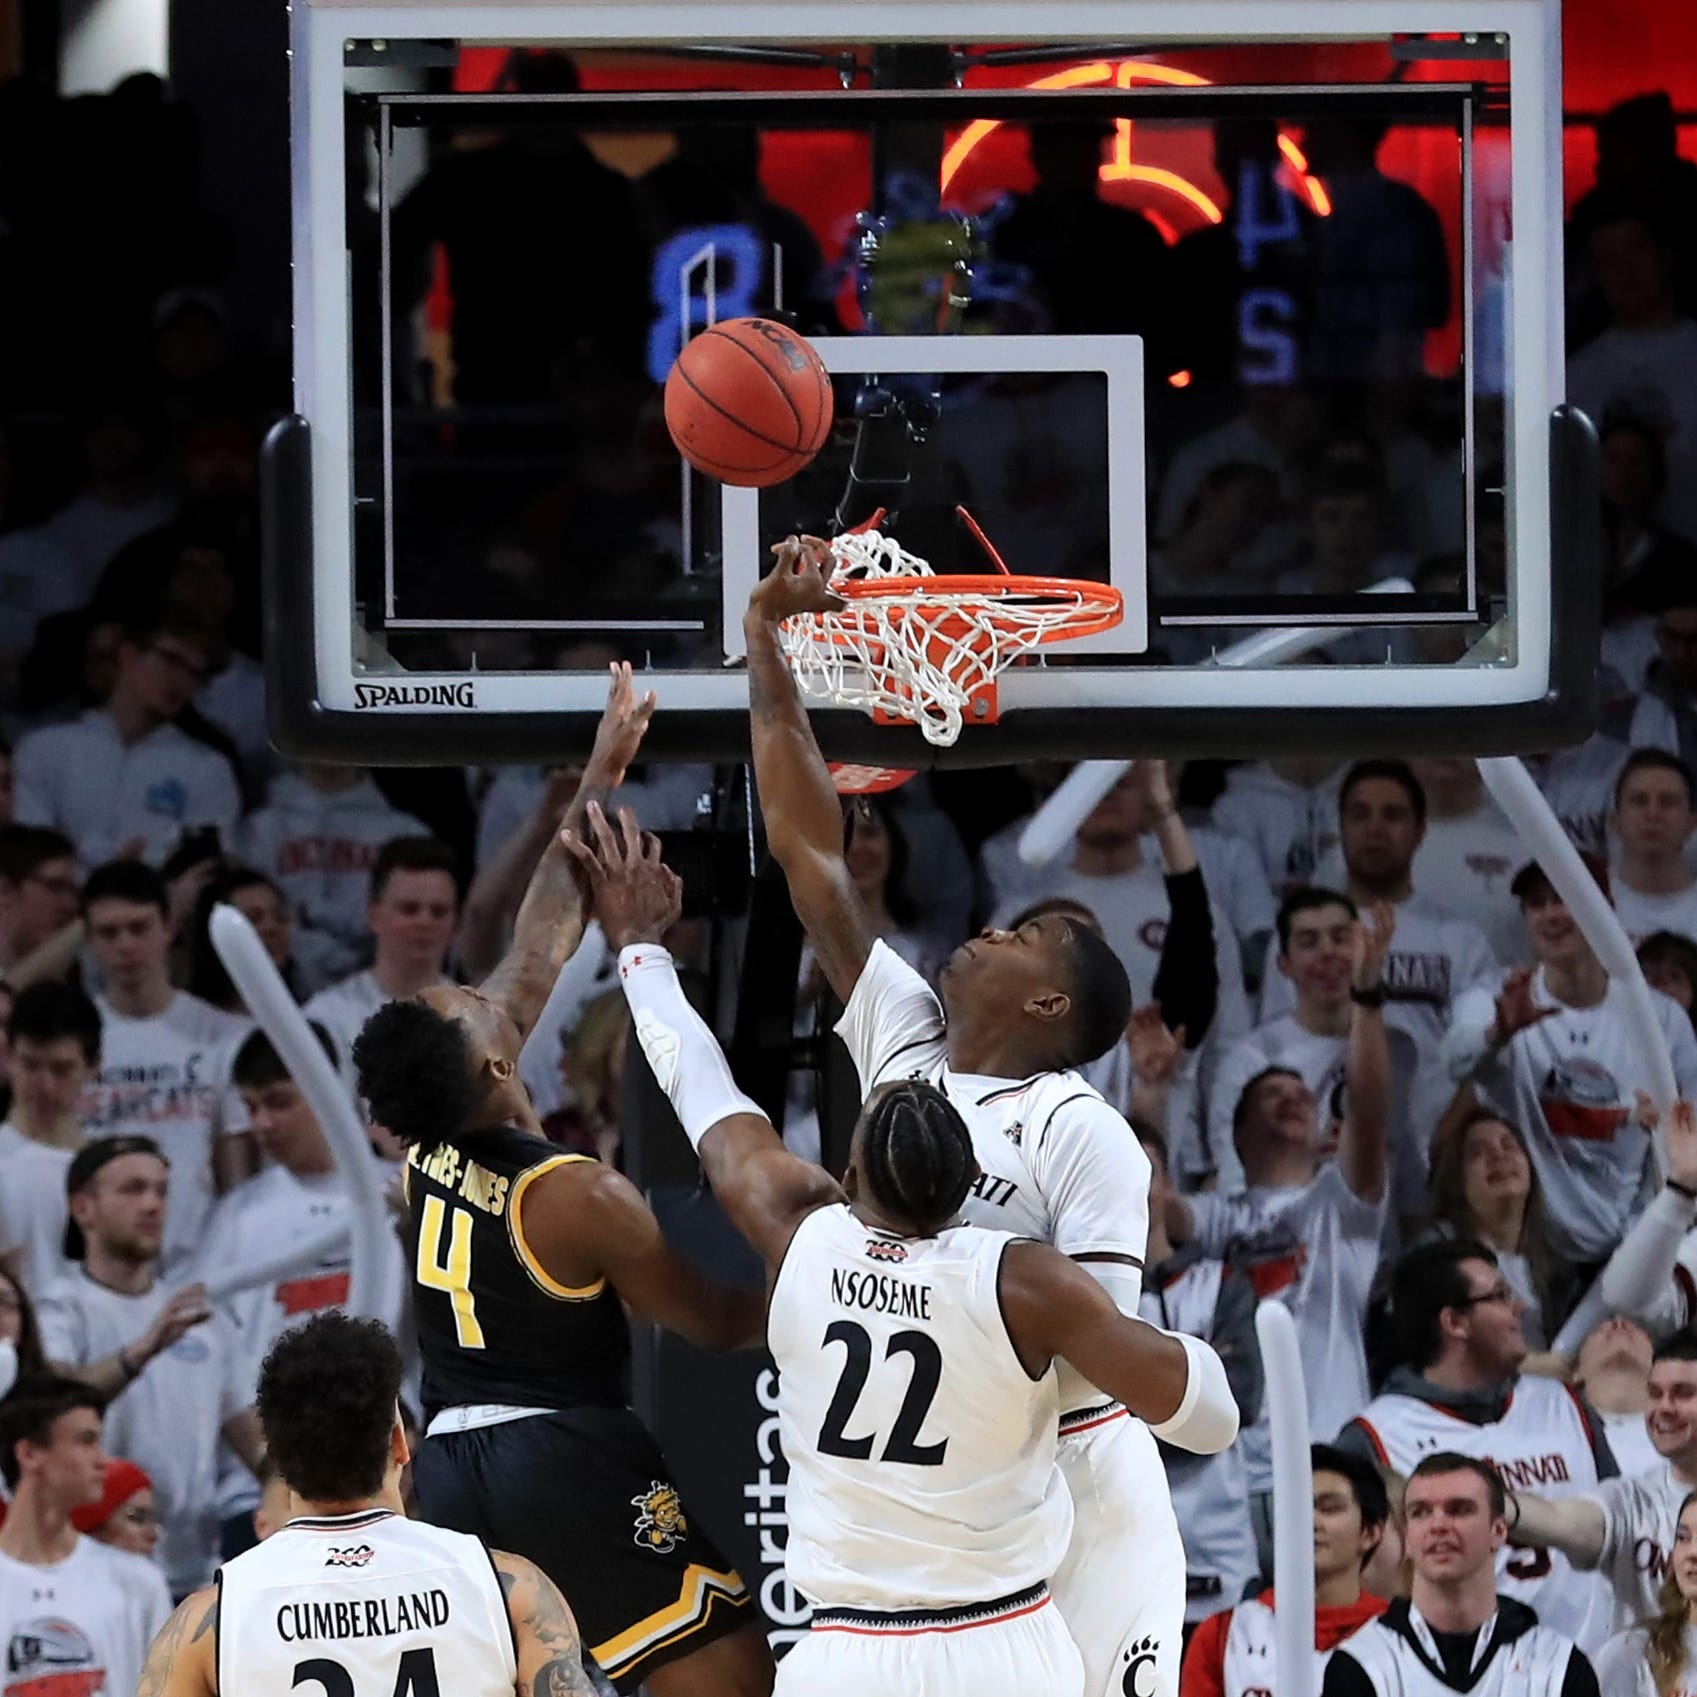 Cincinnati Bearcats stop the Wichita State Shockers